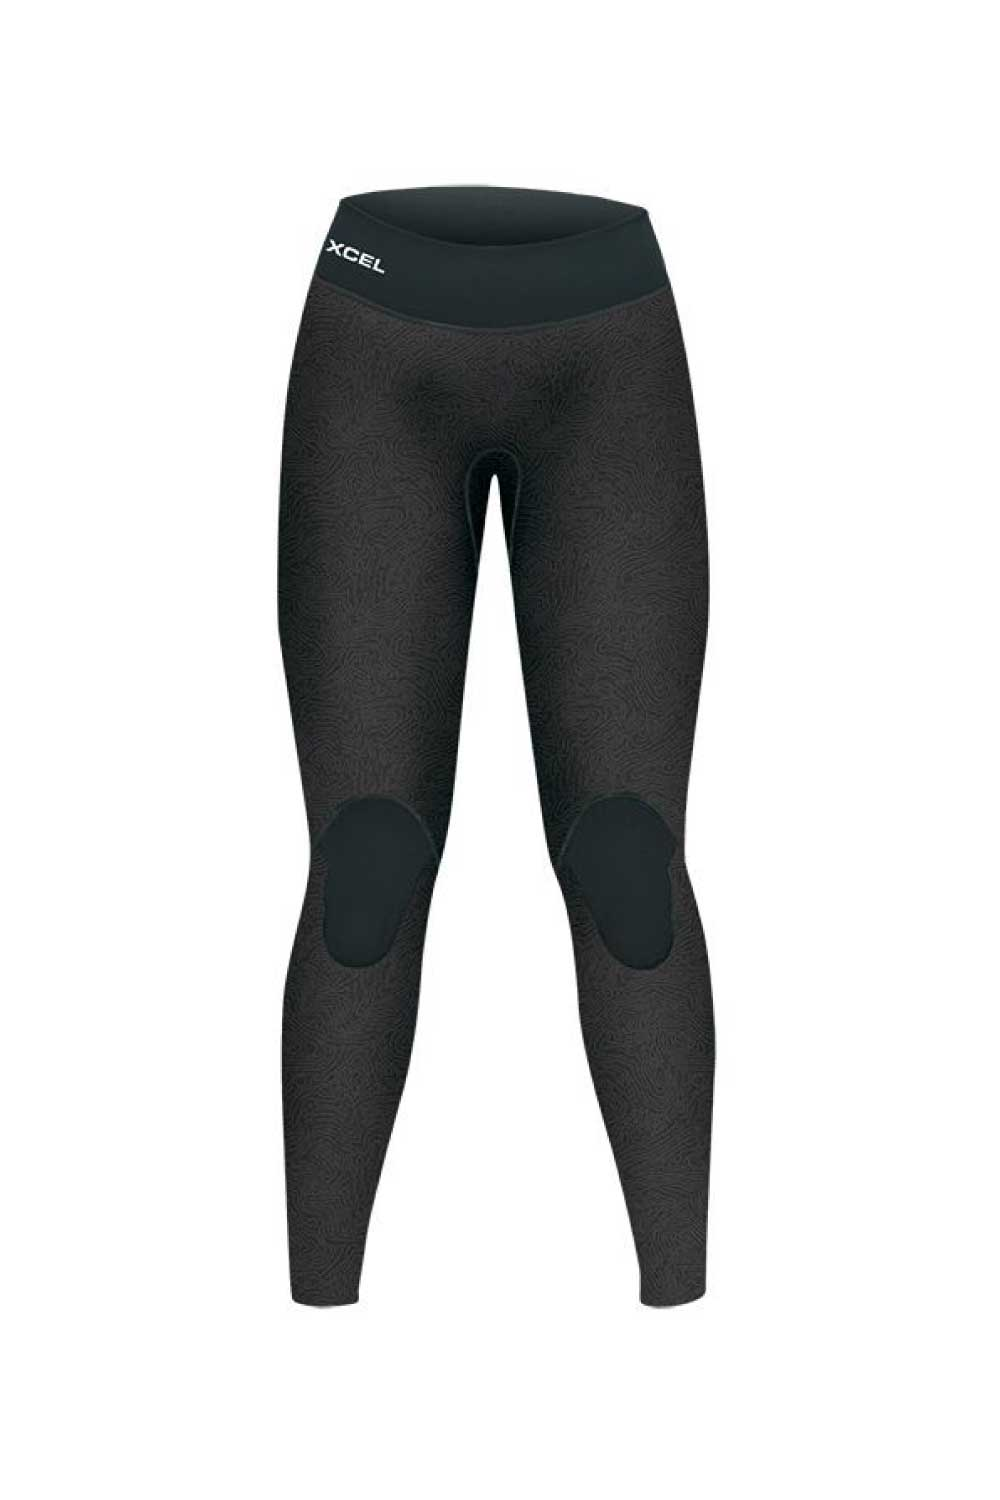 XCEL Women's AXIS 3mm Neoprene Wetsuit Pant